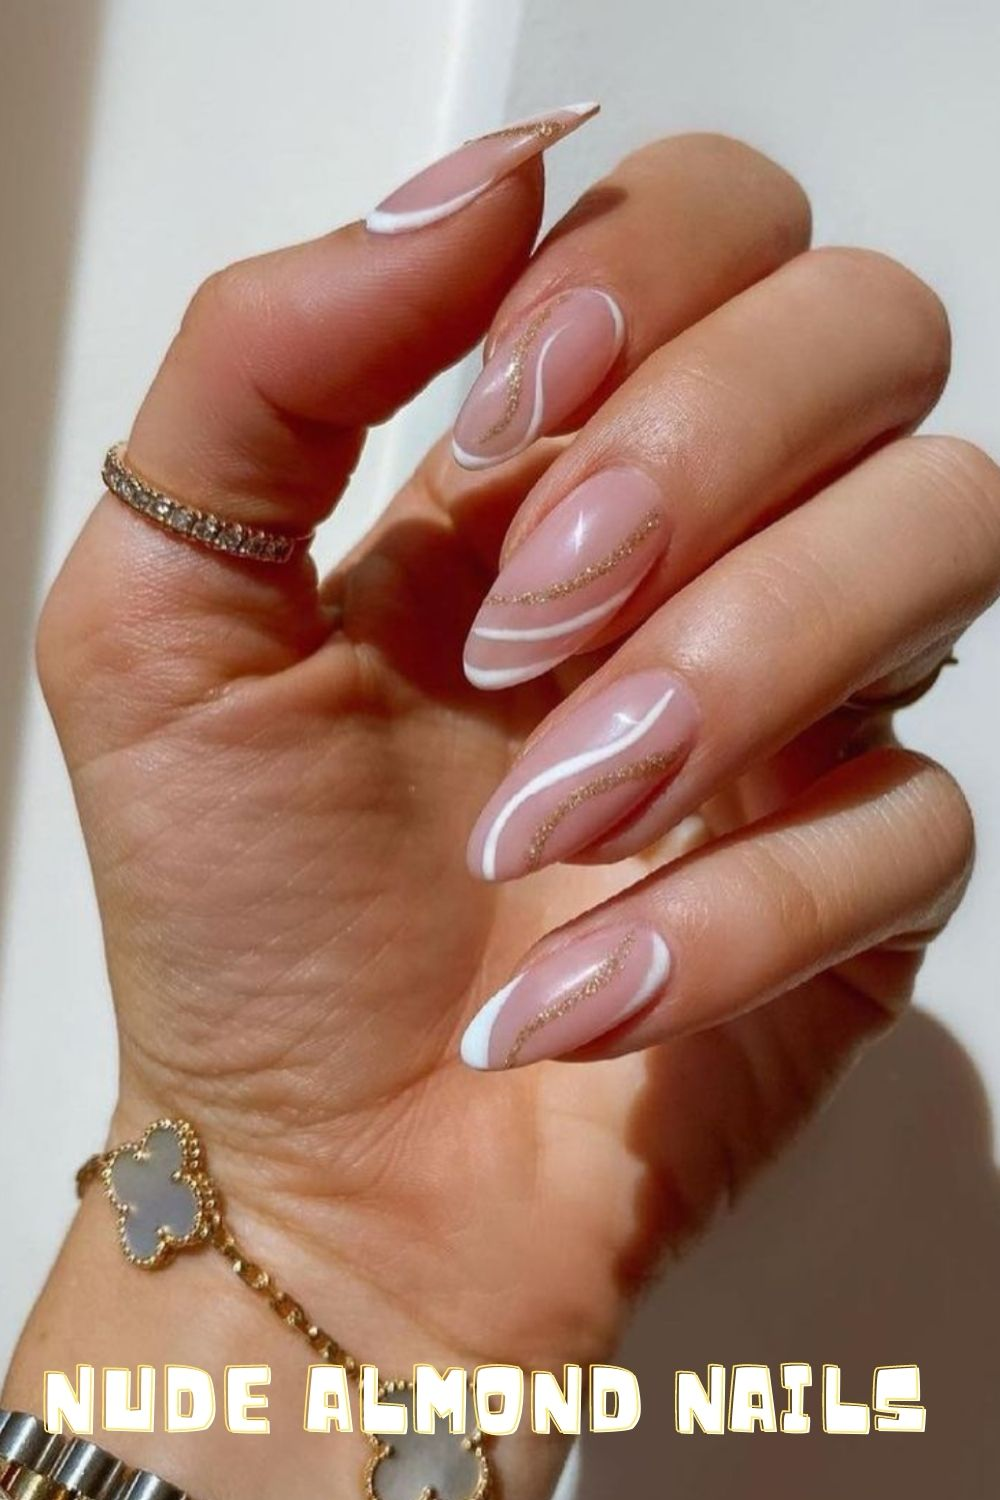 Almond acrylic nails : Cute summer nails ideas 2021 to hit